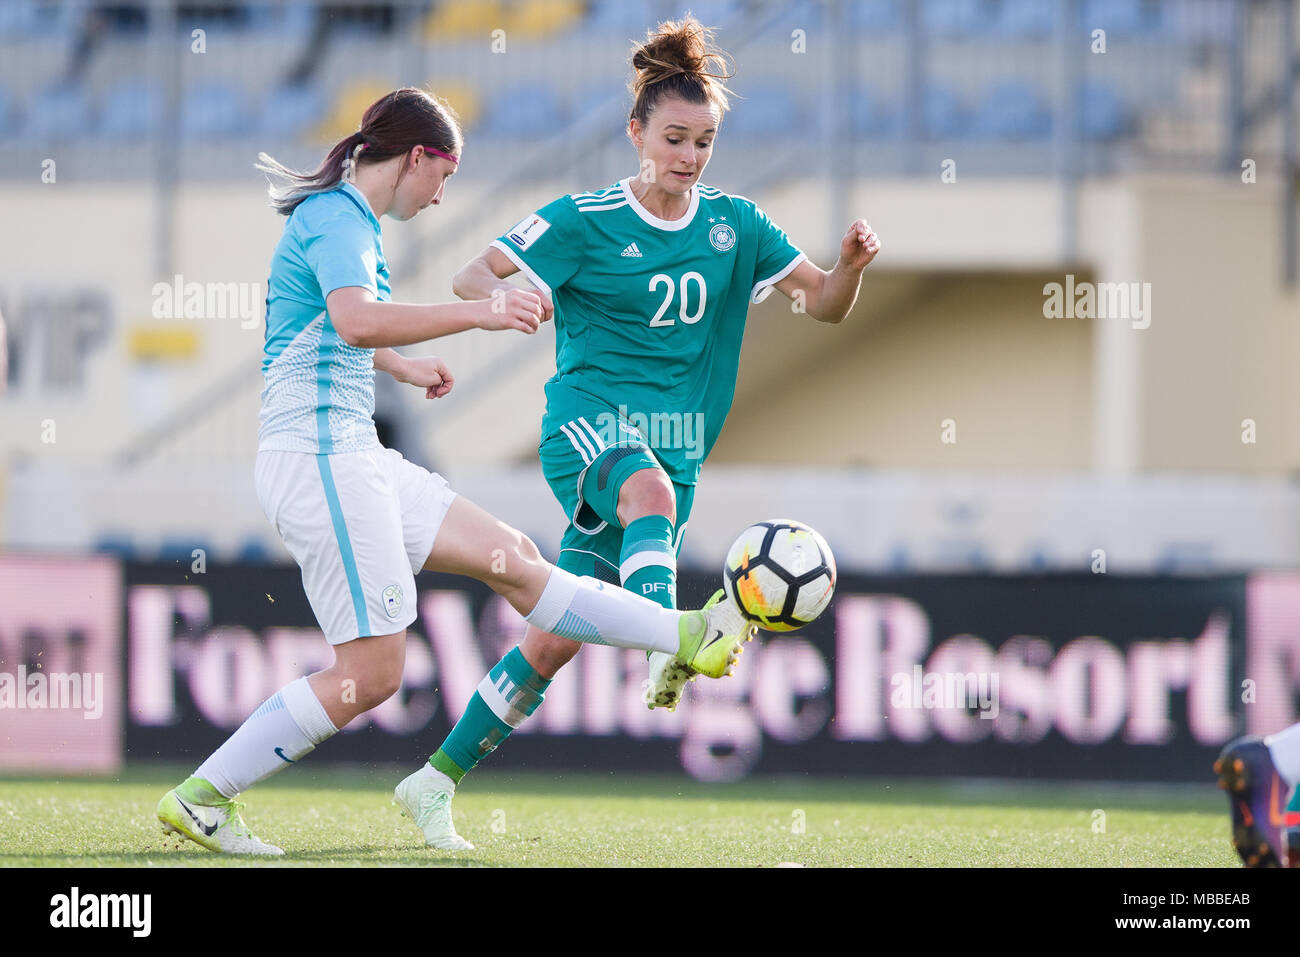 Popular Europe World Cup 2018 - 10-april-2018-slovenia-domzale-soccer-womens-world-cup-qualification-europe-group-stages-slovenia-vs-germany-germanys-lina-magull-r-and-slovenias-kaja-korosec-in-action-photo-sasa-pahic-szabodpa-MBBEAB  Picture_8583 .jpg